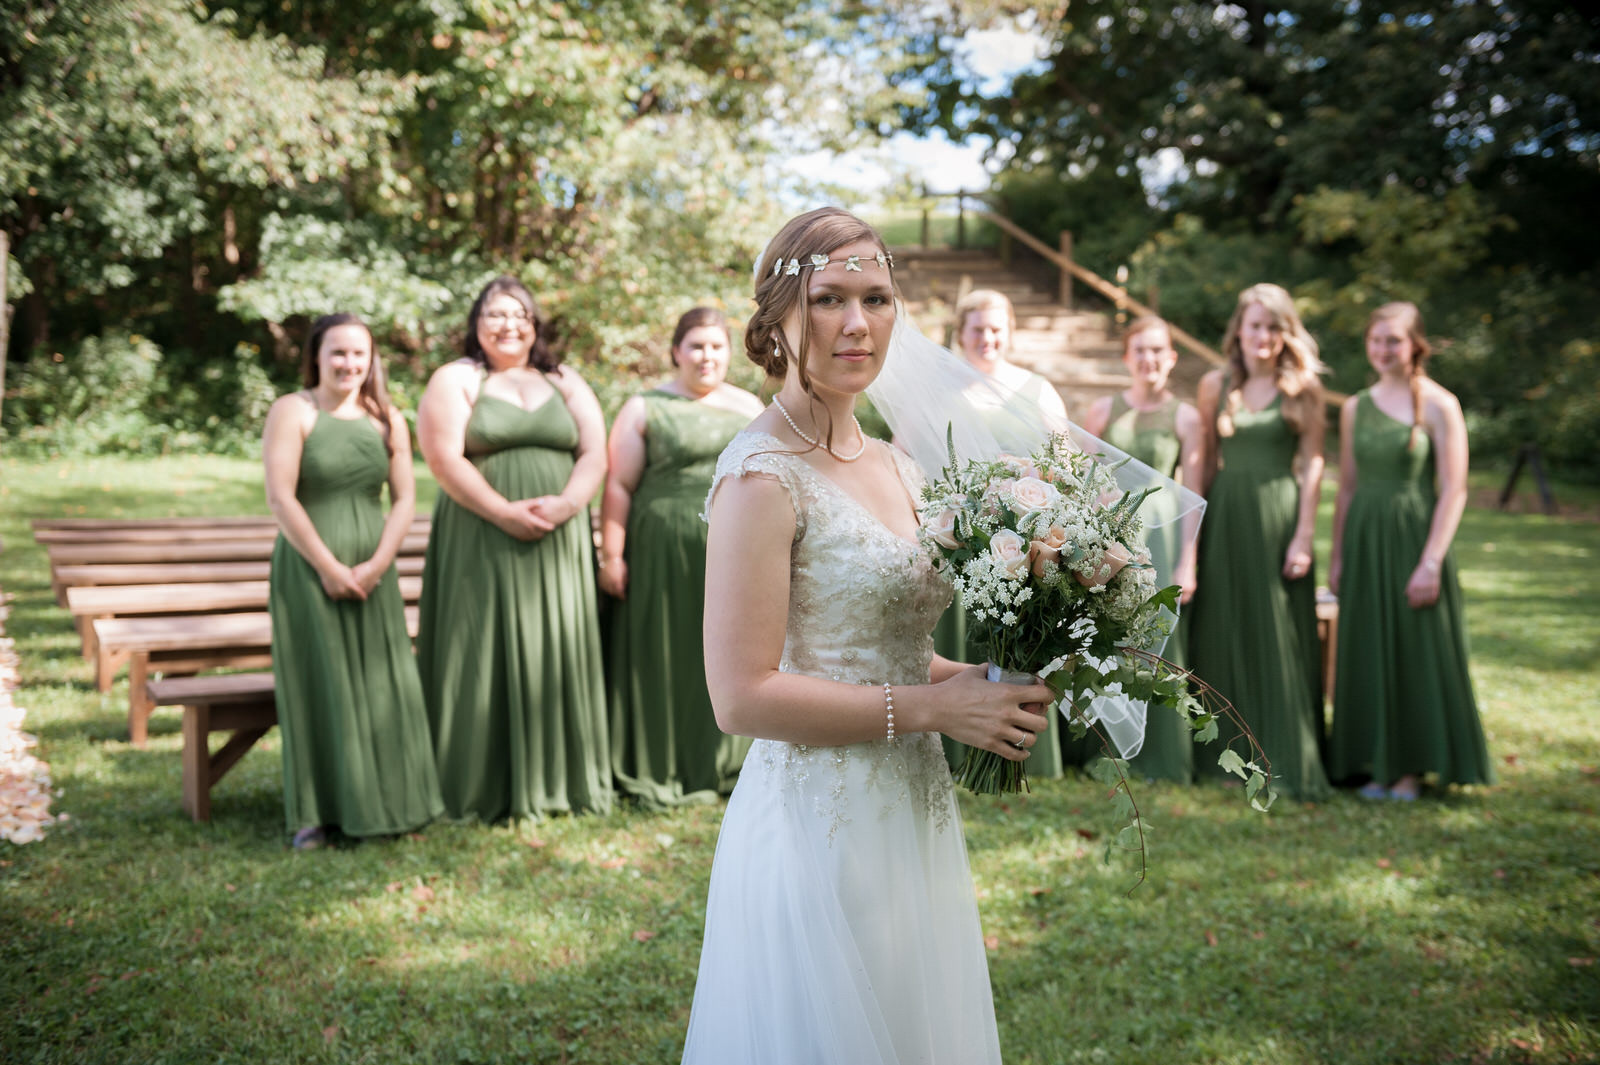 Hocking-hills-athens-lancaster-logan-ohio-wedding-photography-photographer-marriage-heart of the country-outdoors-princess-bride-bridesmaids